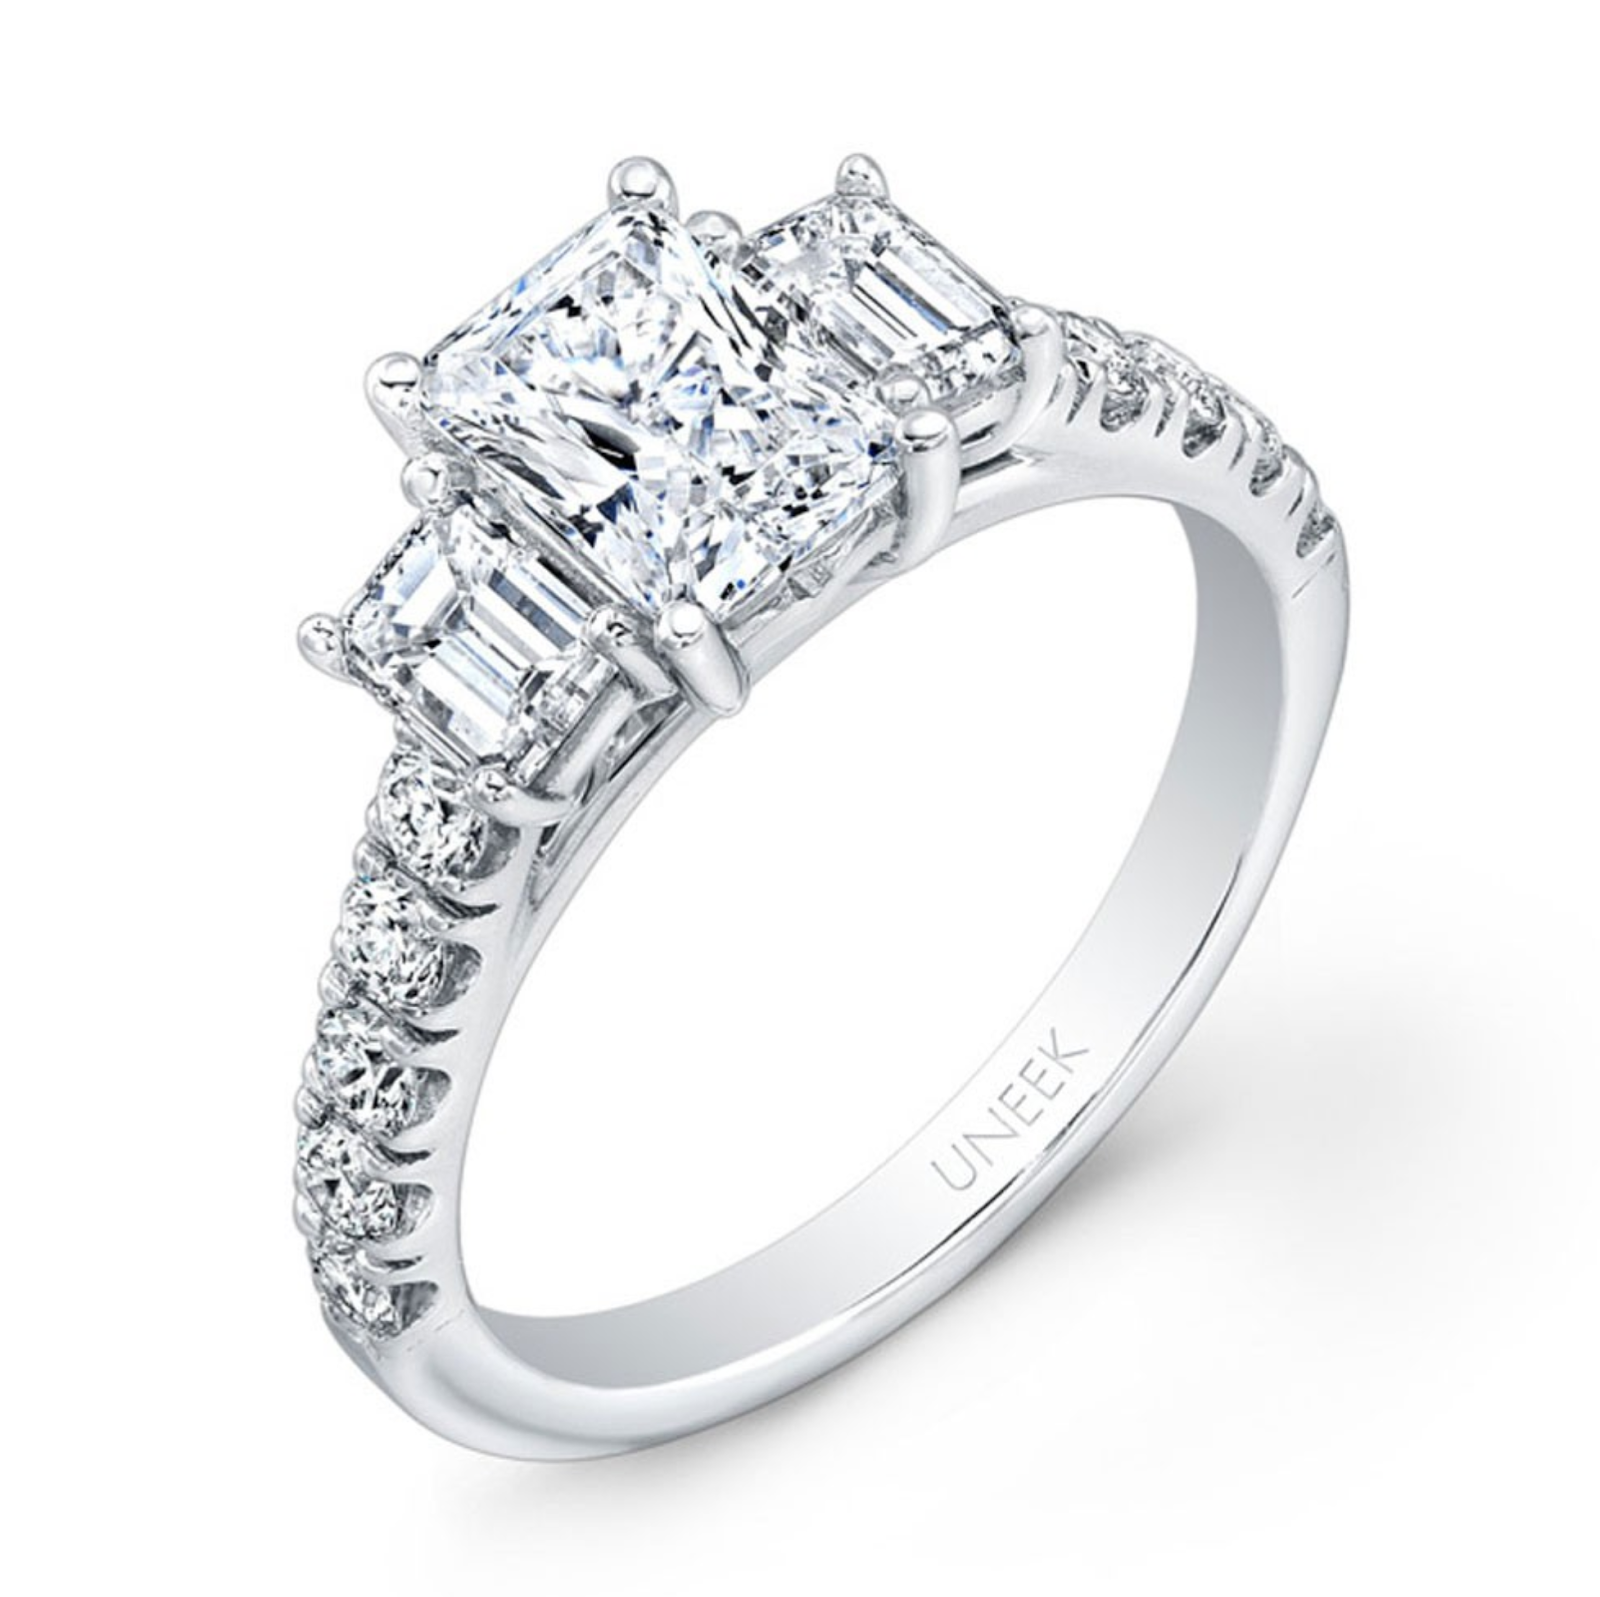 hitched htm ring anna grey bridalwear planning diamond uk engagement sheffield co articles rings wedding alternative